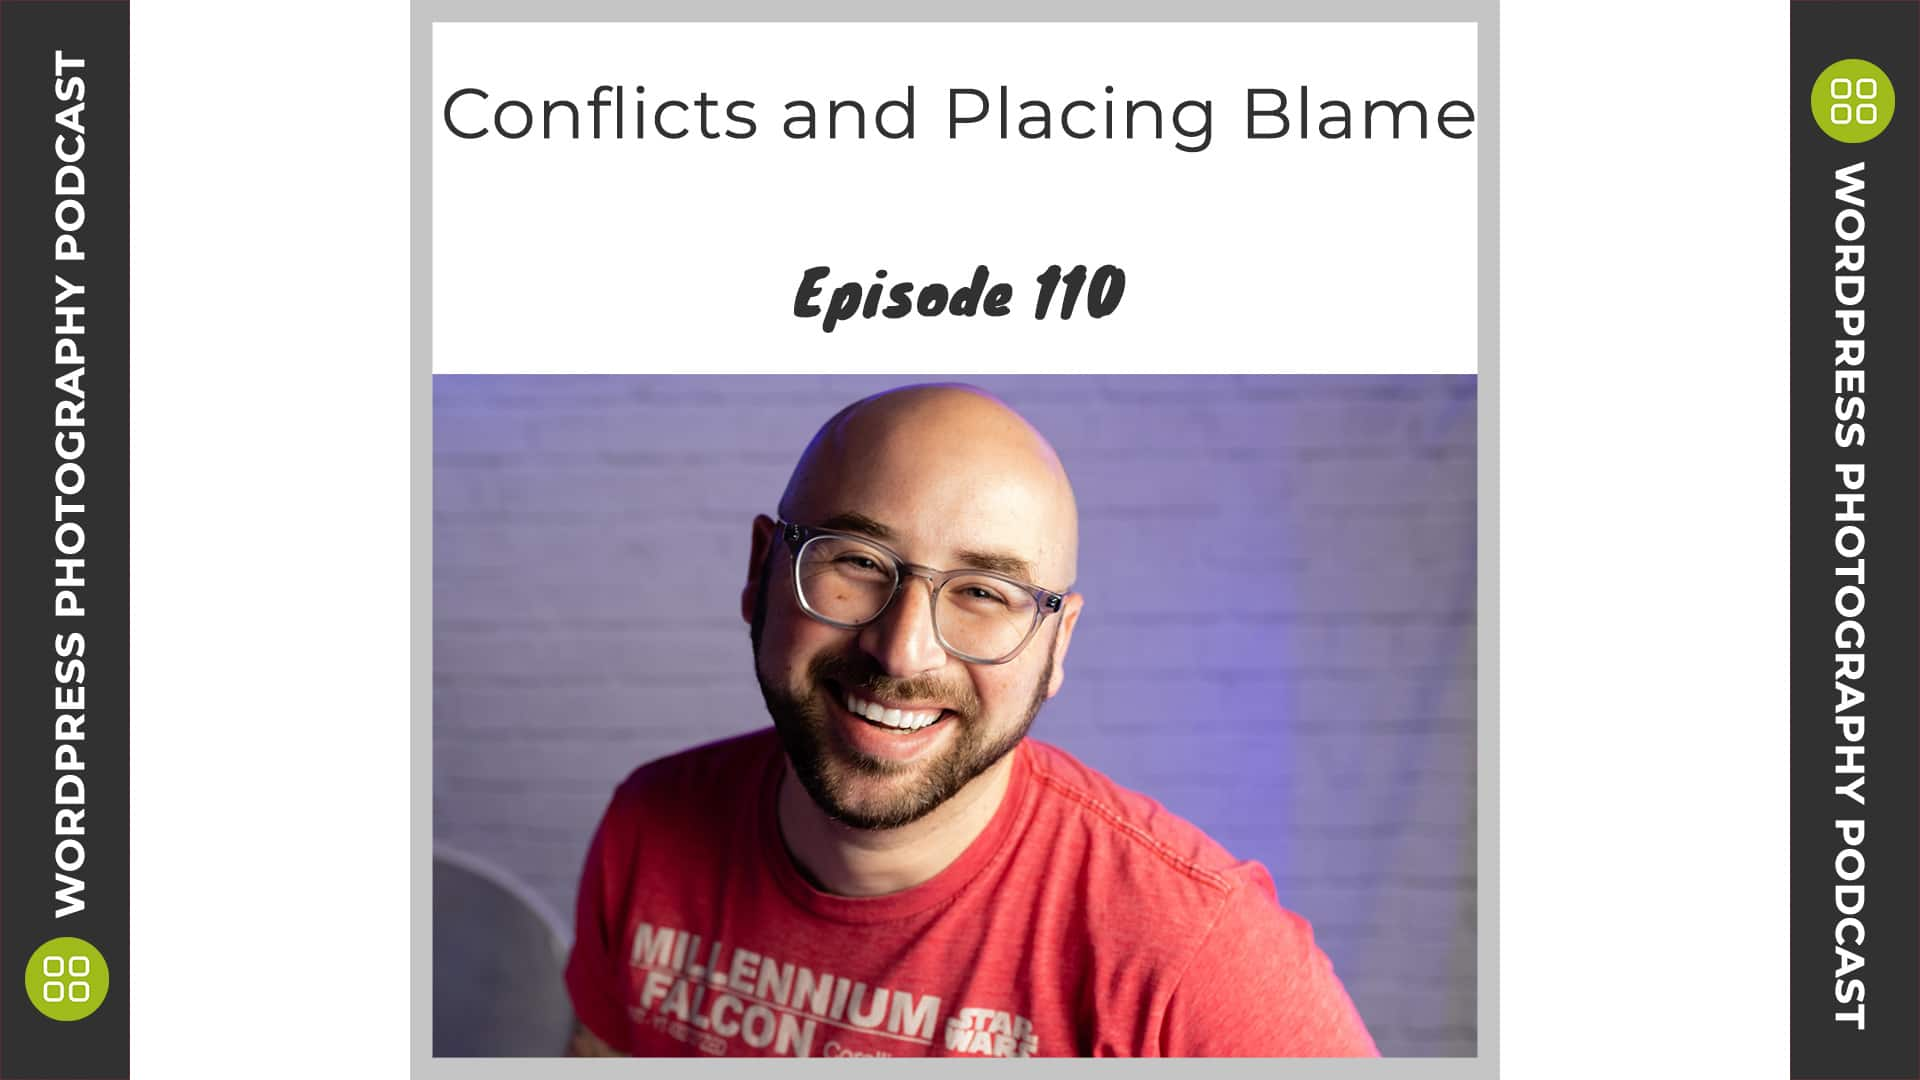 Episode 110 – Conflicts and Placing Blame